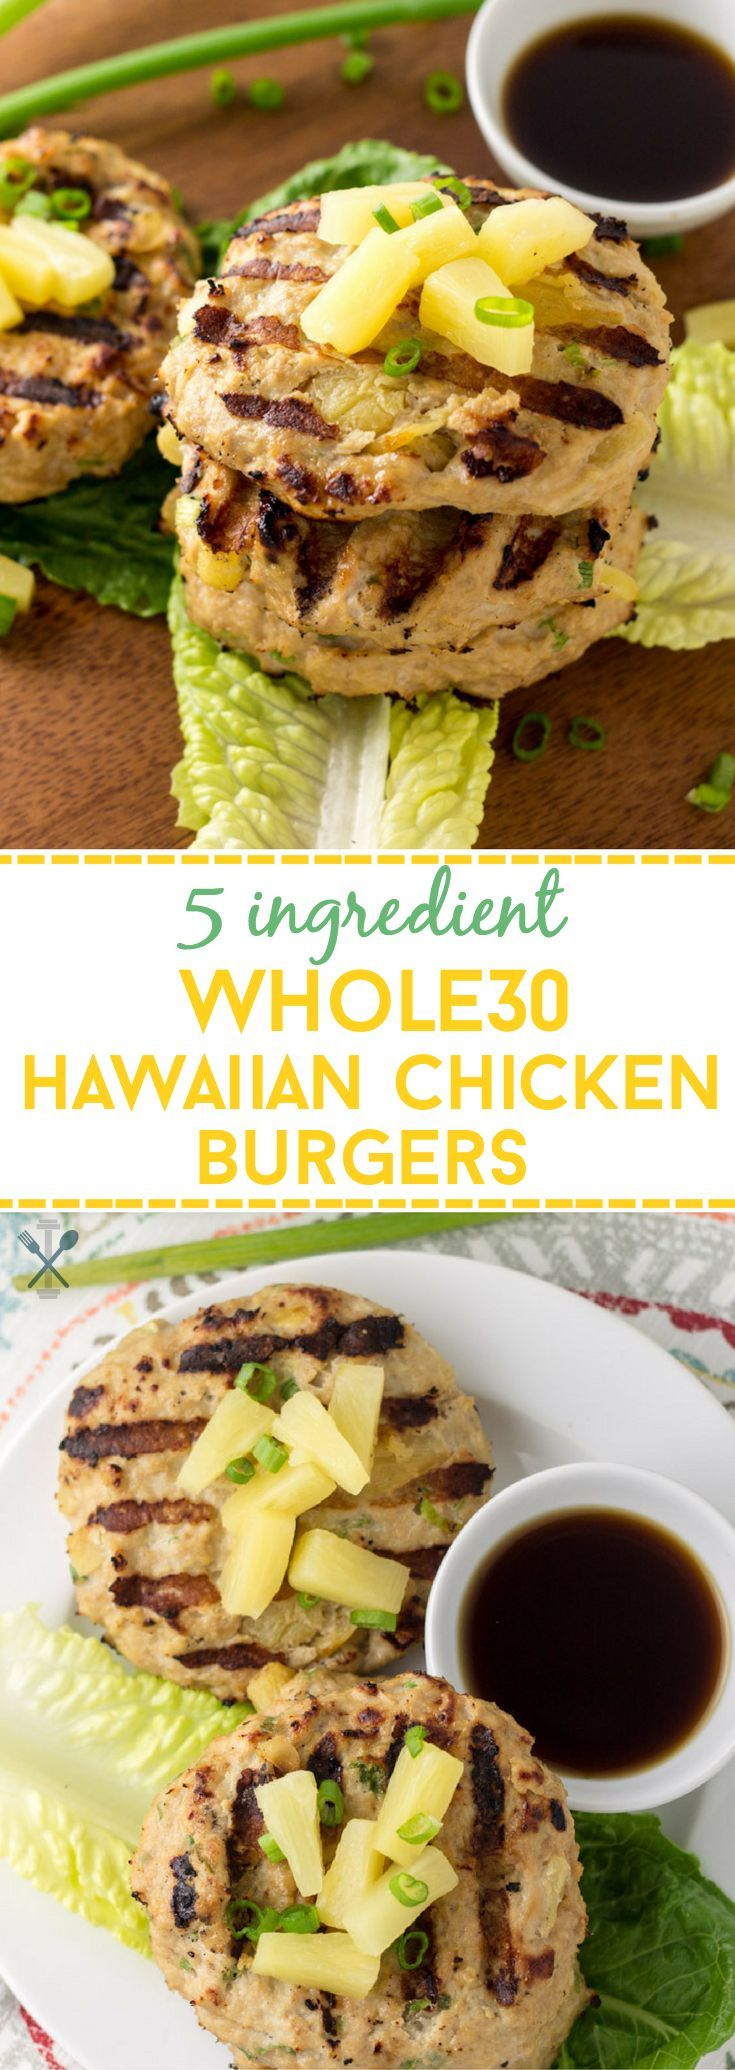 These Whole30 chicken burgers are made with only 5 ingredients, and bursting with flavor. Ground chicken with diced pineapples and coconut aminos, along wth a few other ingredients make up the easiest, tastiest summer burger that's lean, paleo, and Whole30 compliant